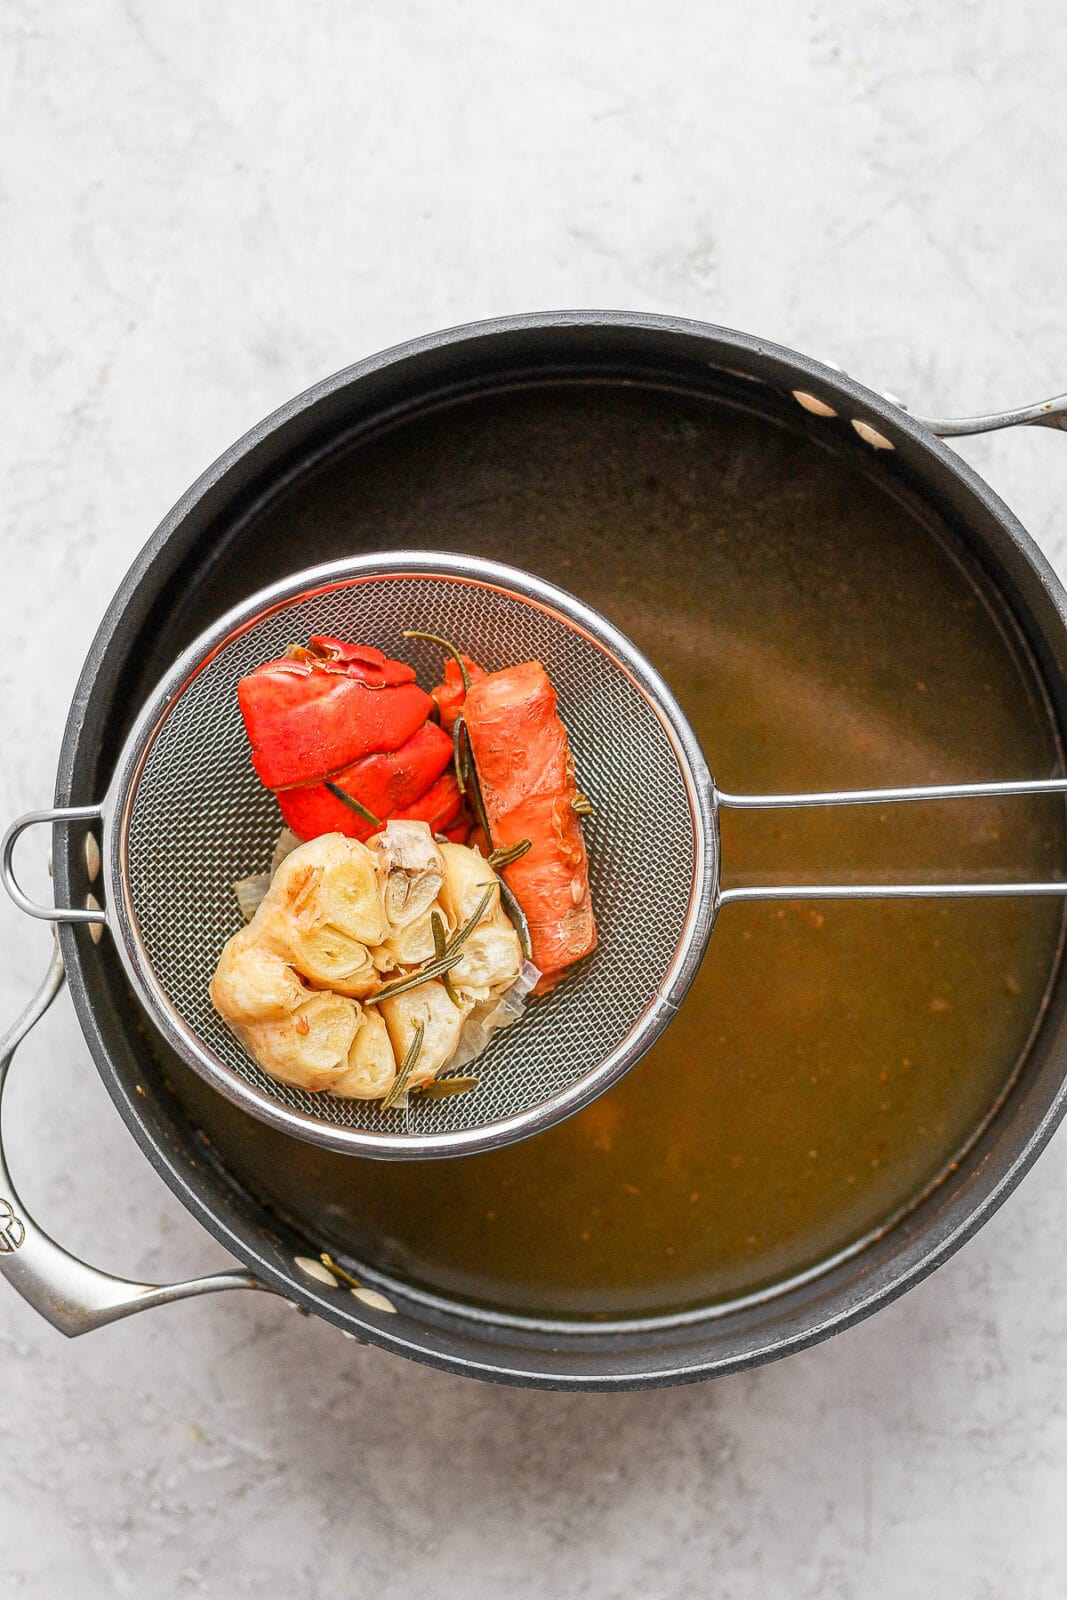 Image of straining large pieces out of the seafood stock.